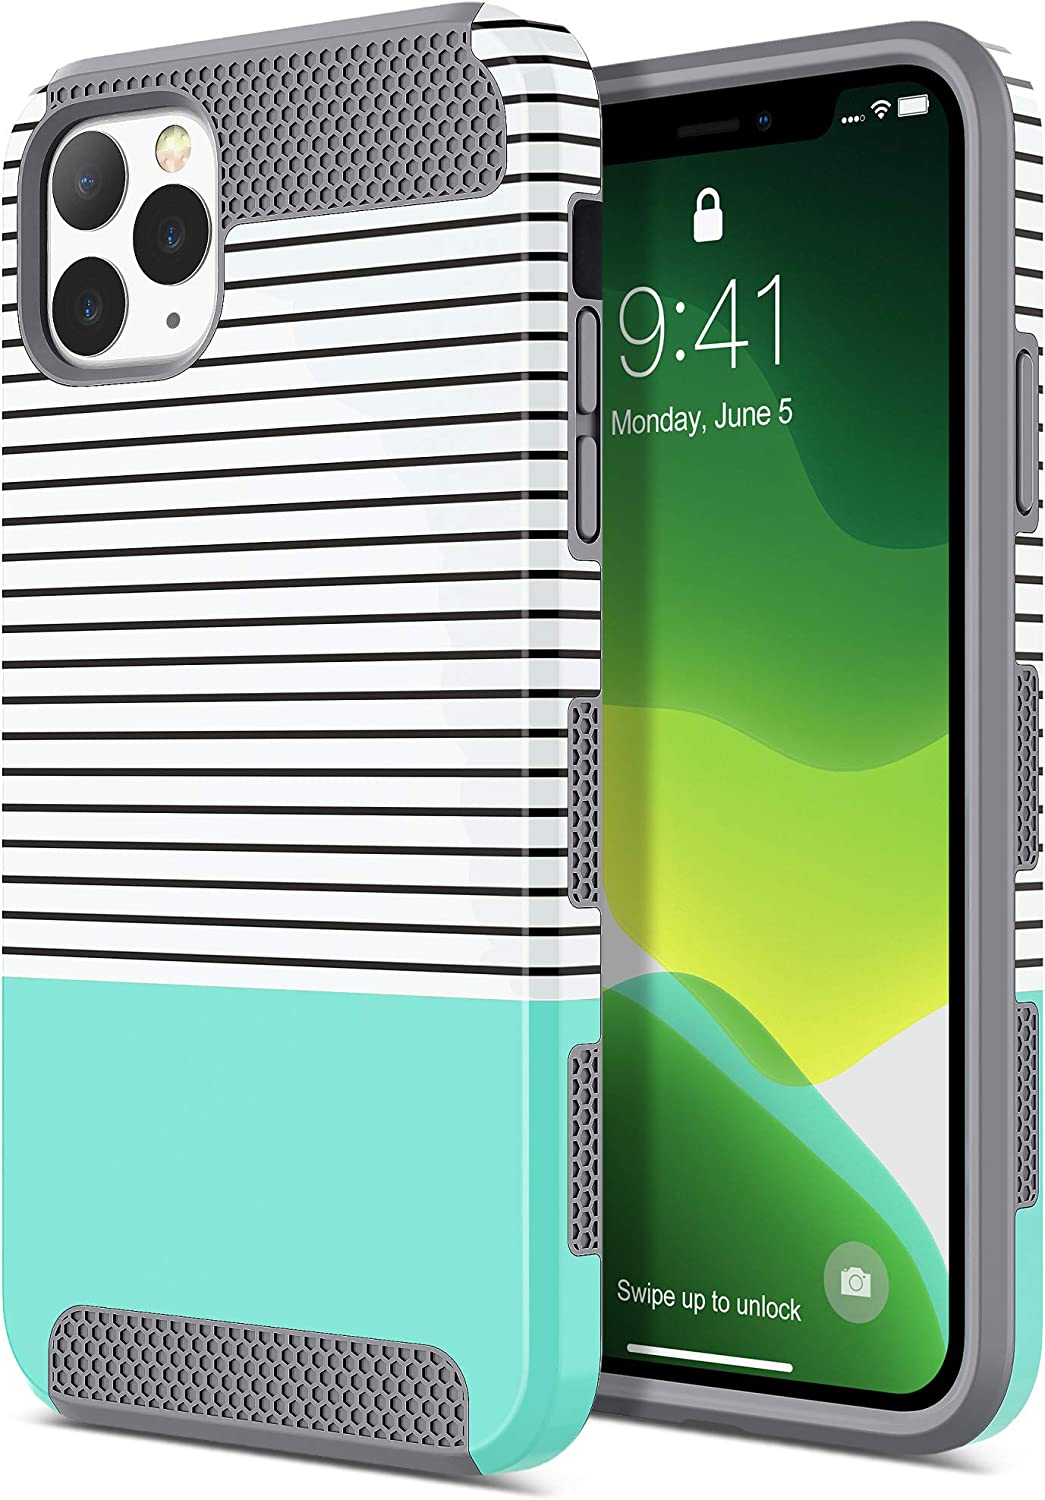 ULAK iPhone 11 Pro Max Case, Stylish Slim Shockproof Protective Hybrid Scratch Resistant Hard Back Shock Absorbent TPU Bumper Case for Apple iPhone 11 Pro Max 6.5 Inch (2019), Green Minimal Stripes